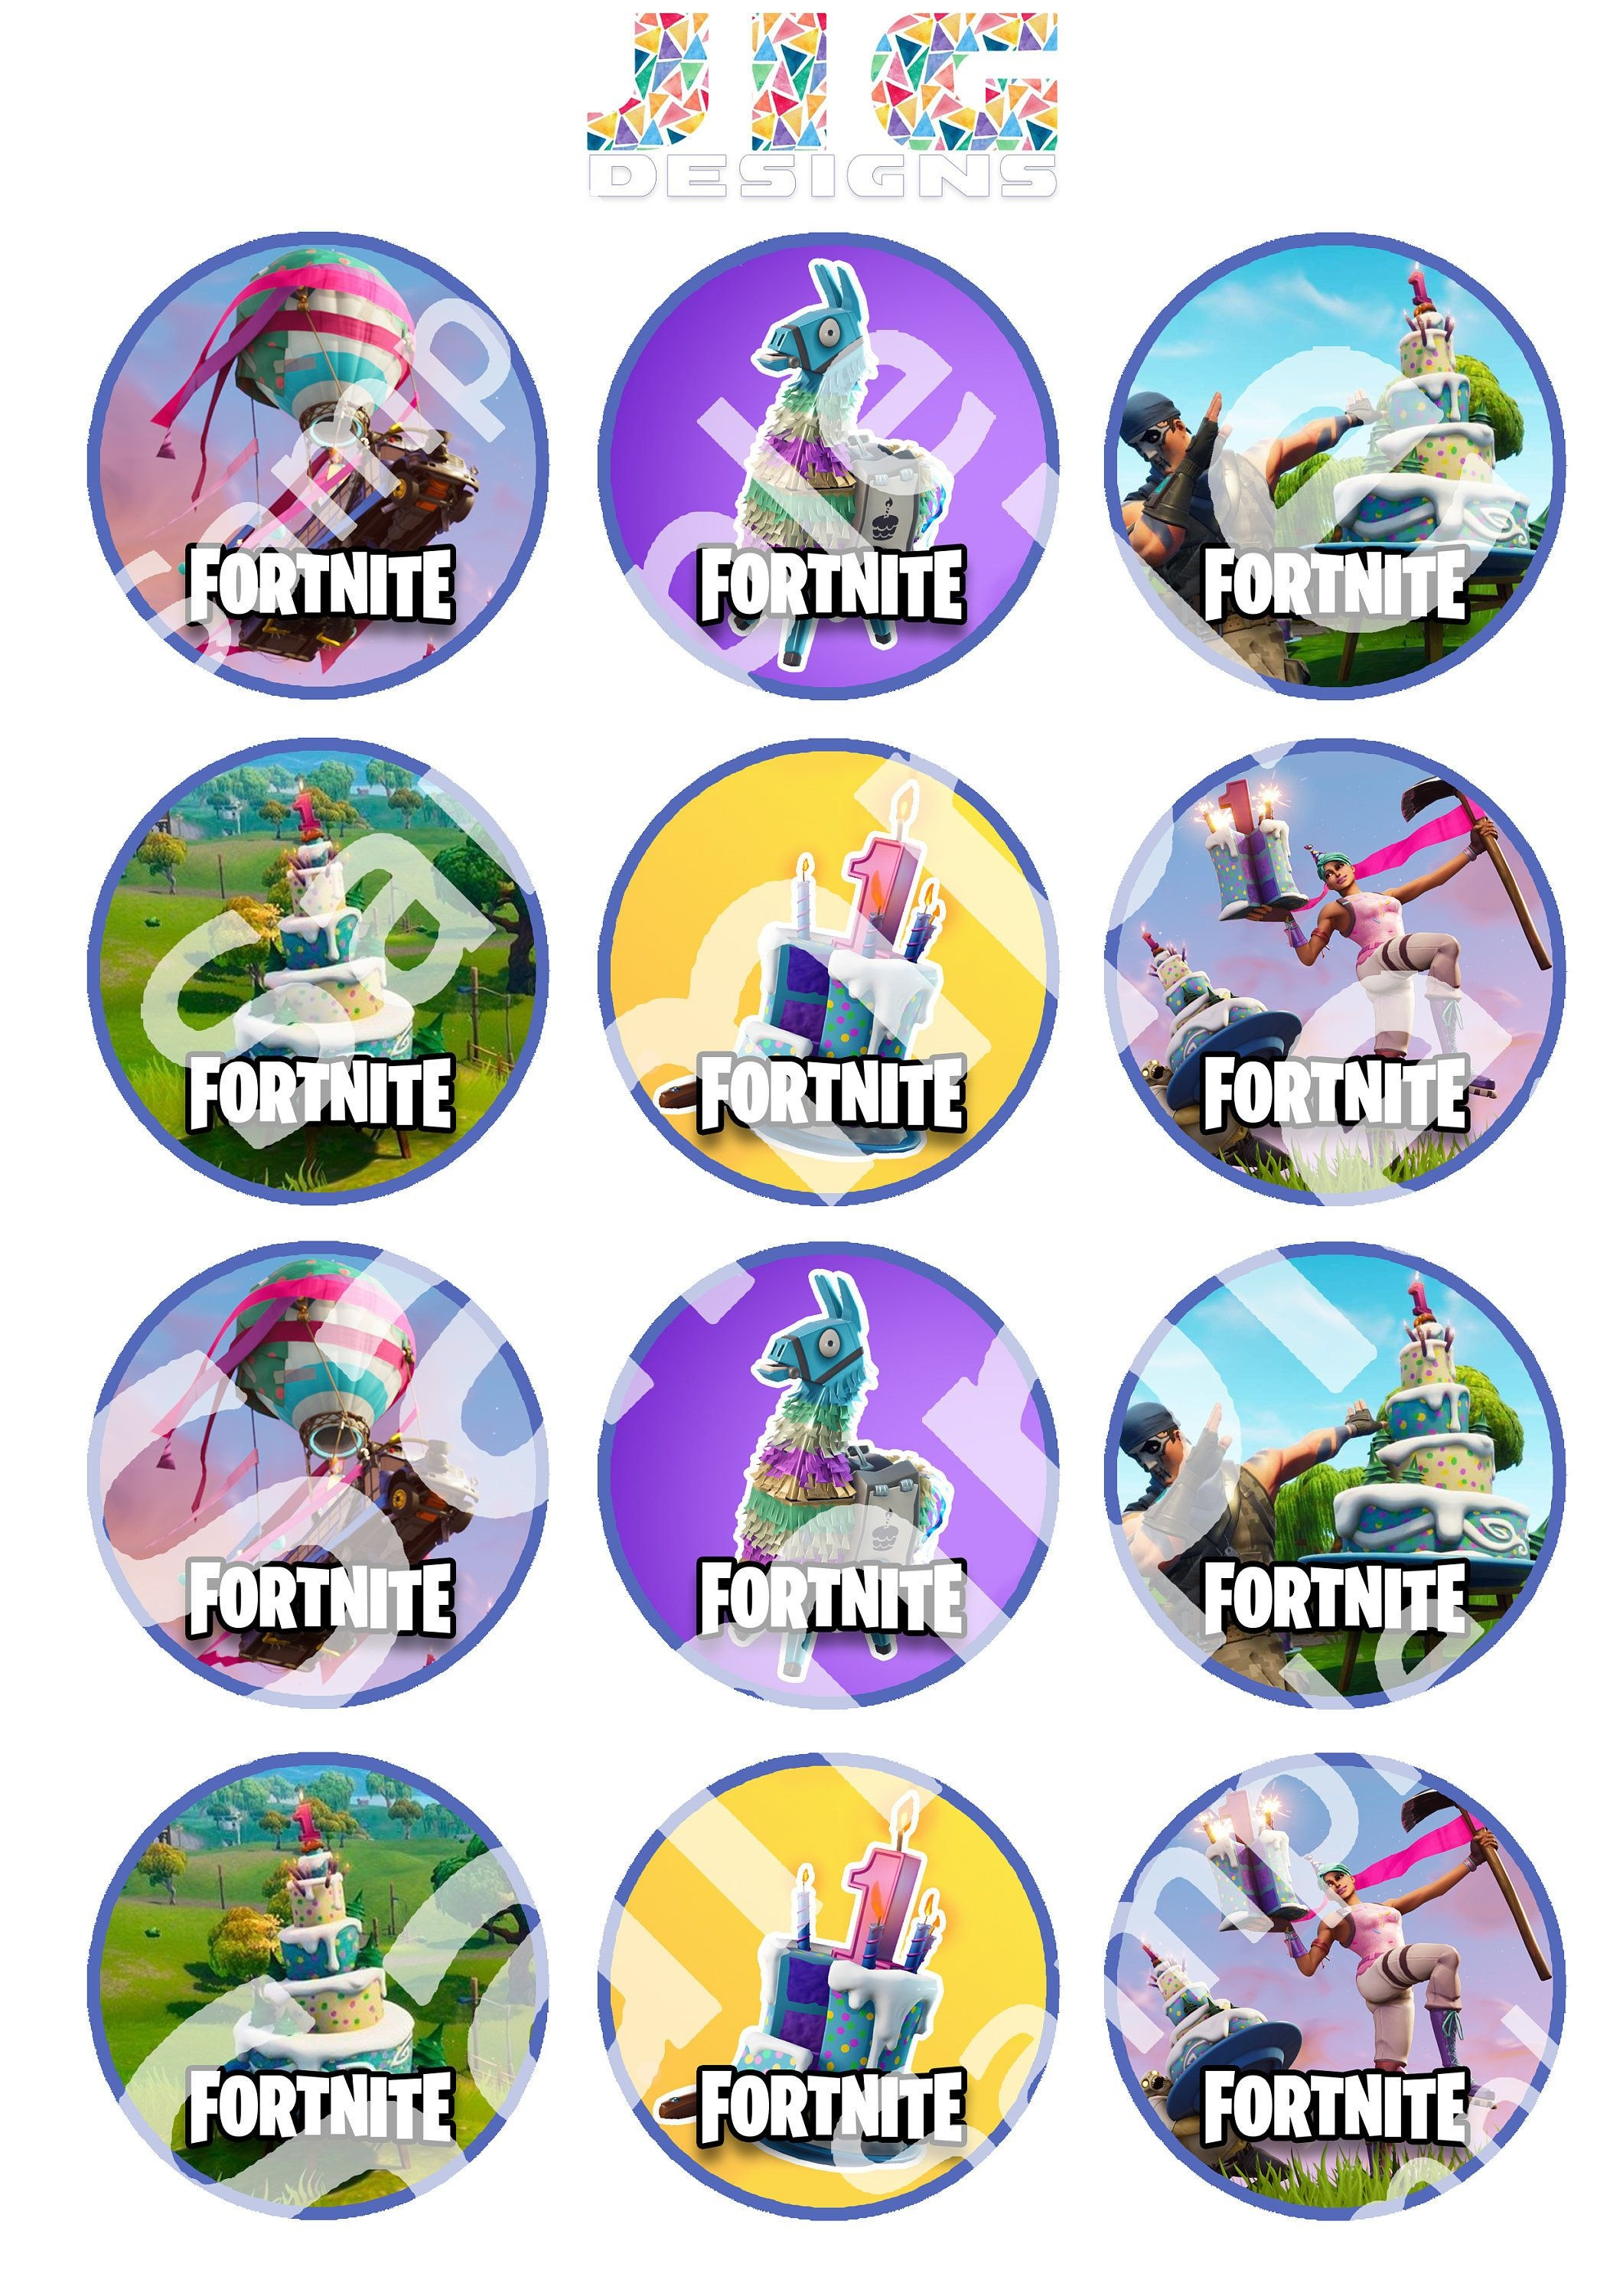 Pinspencer Geyer On Cool Ideas In 2019 | Cupcake Toppers - Free Printable Fortnite Cupcake Toppers